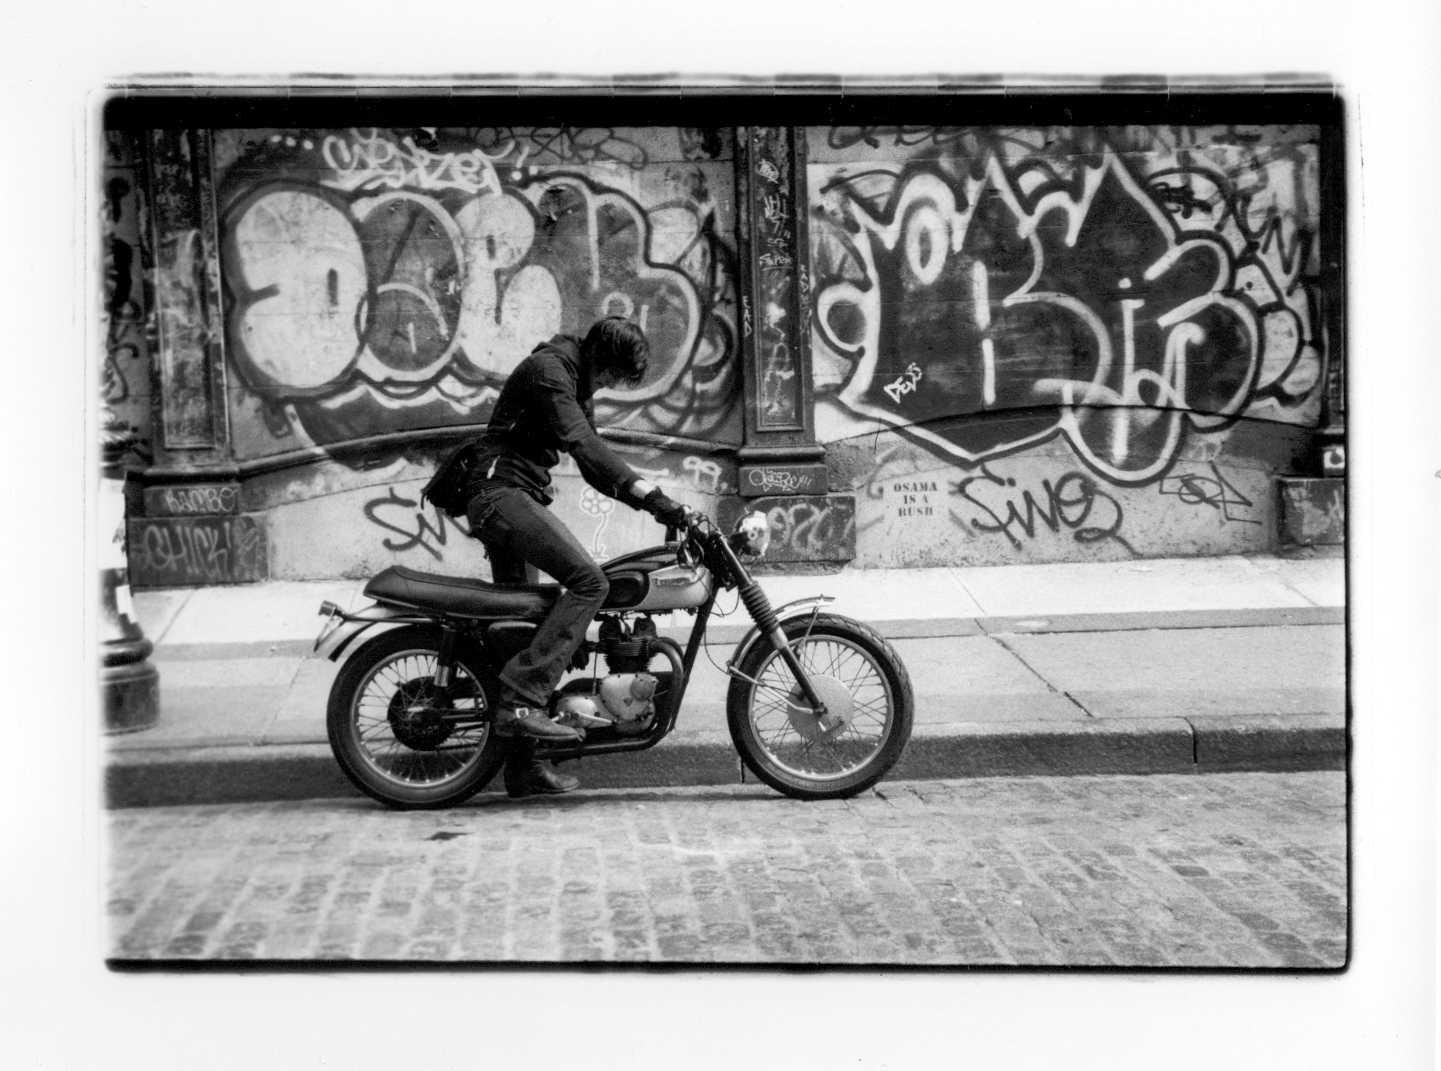 triumph motorcycle   NYC 2003